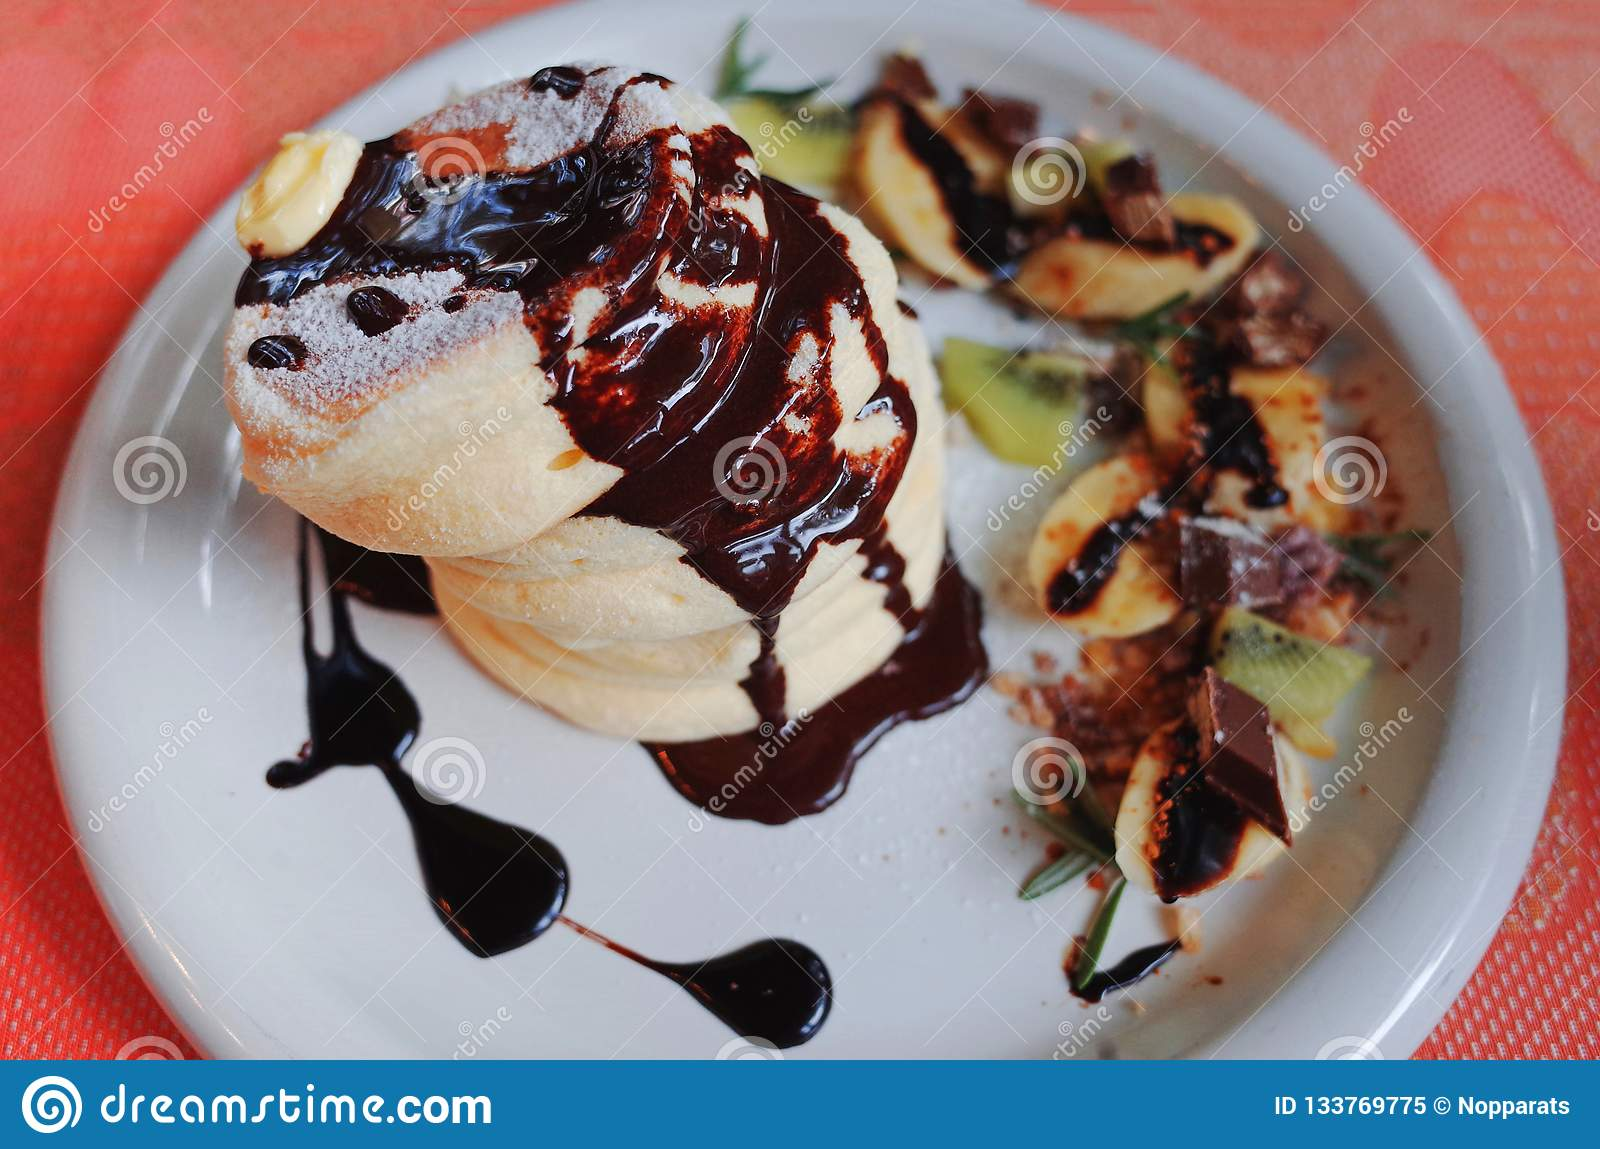 Tasty Pancakes with chocolate on top